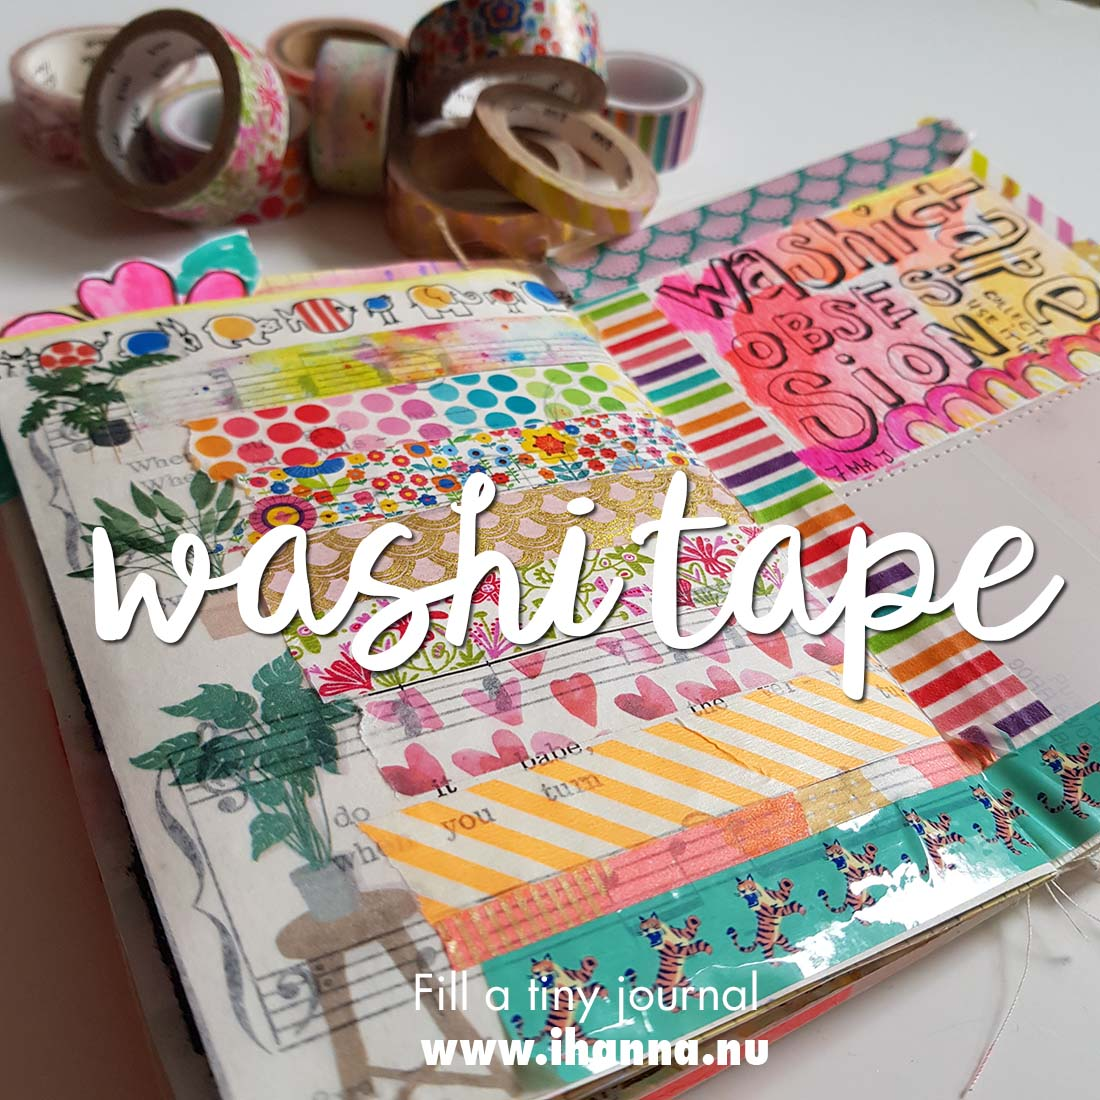 Fill a tiny journal: Washi Tape Love